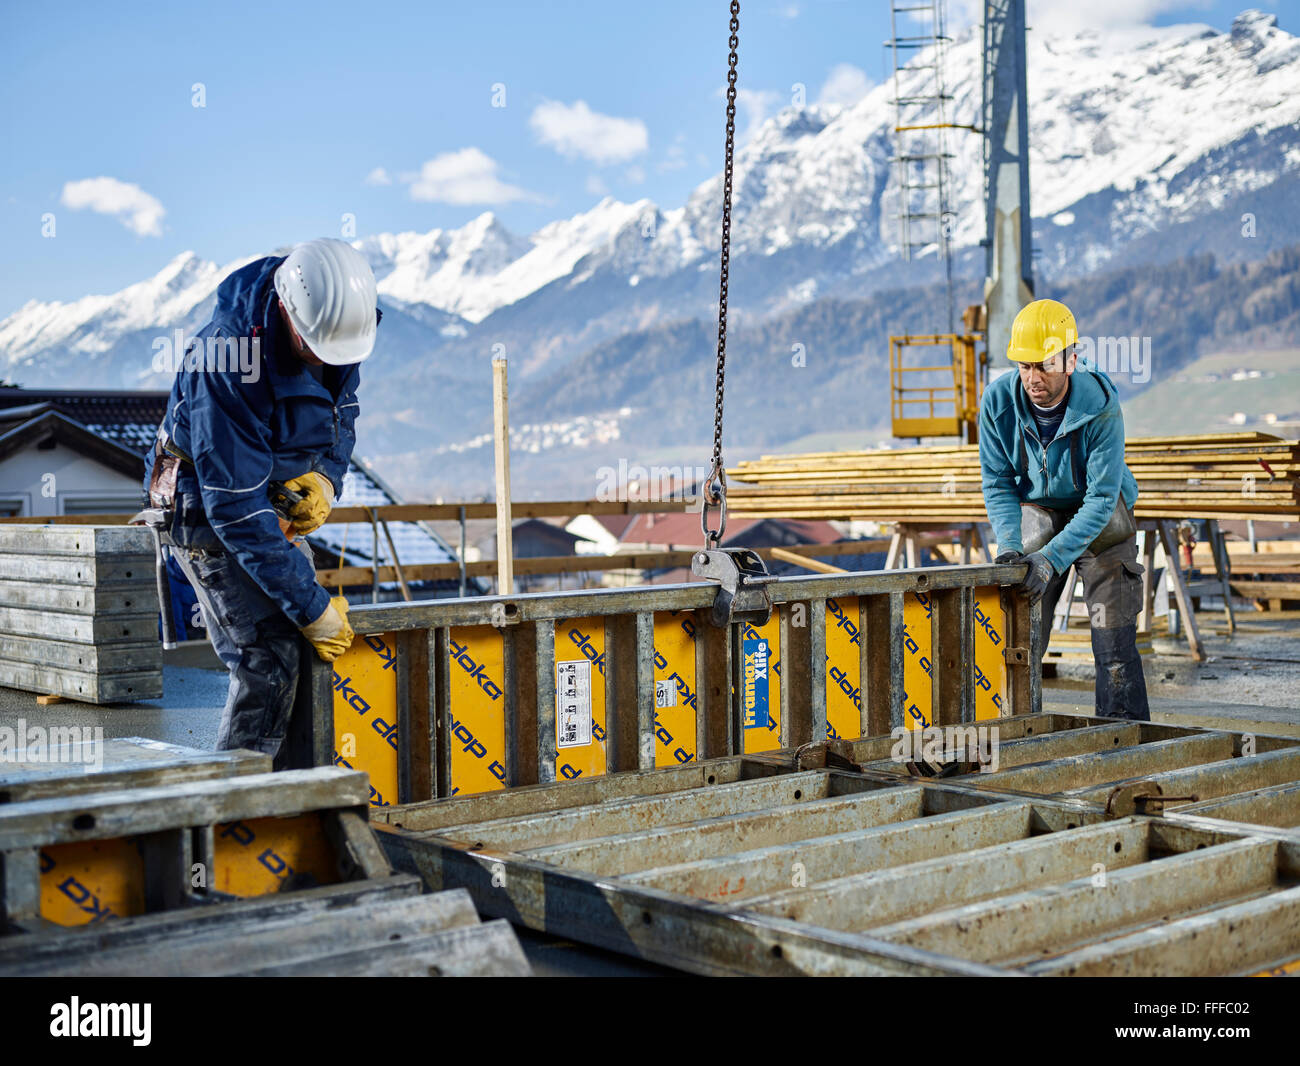 Construction workers lifting shuttering wall with crane, preparing framed formwork, Innsbruck Land, Tyrol, Austria - Stock Image